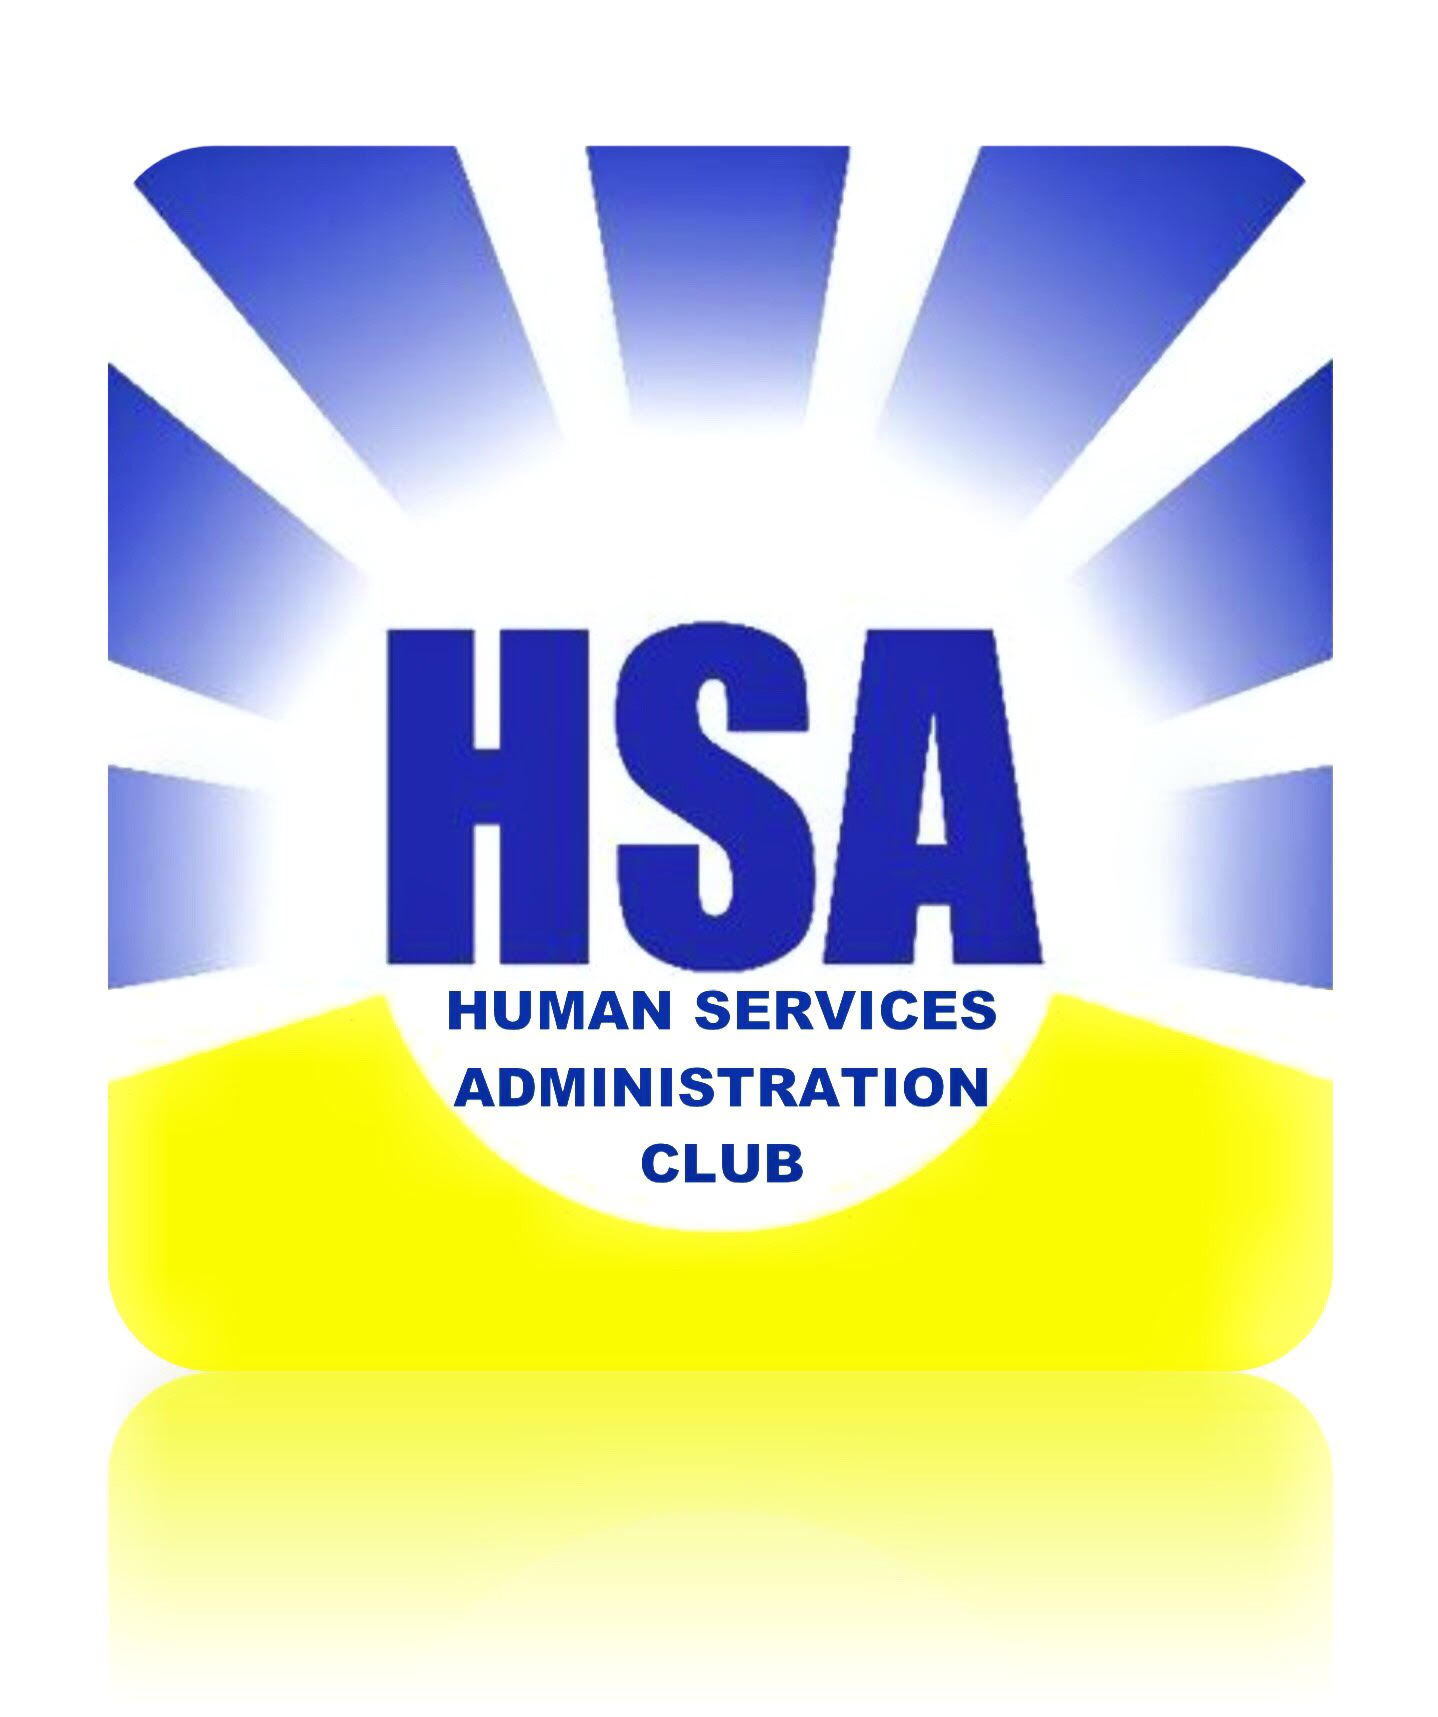 Human Services Administation Club's First Meeting